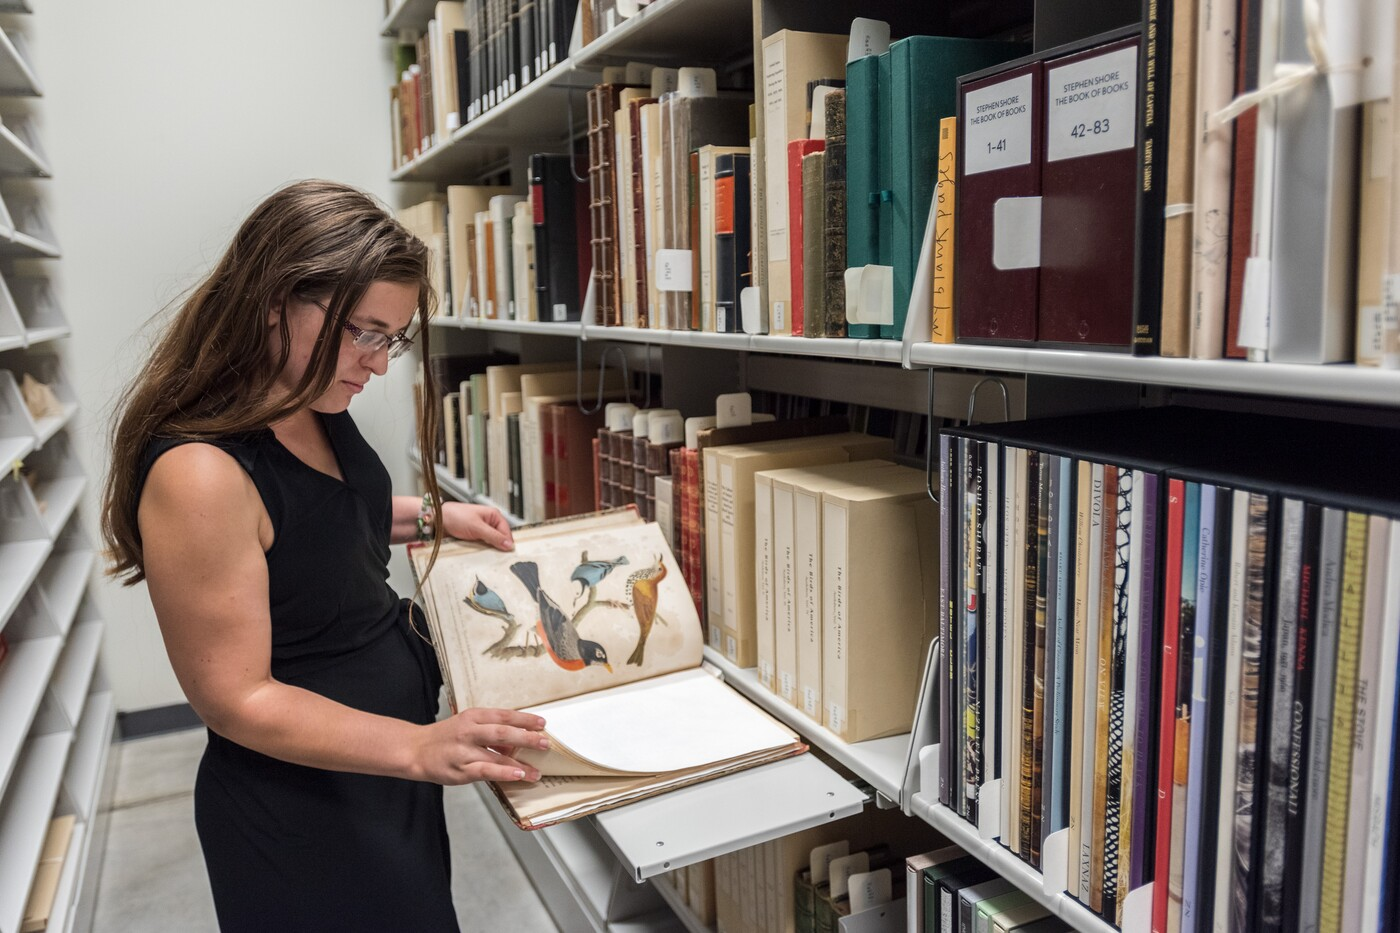 Shelves with archival materials are on the right; on the left a woman has a book open and is reviewing it.